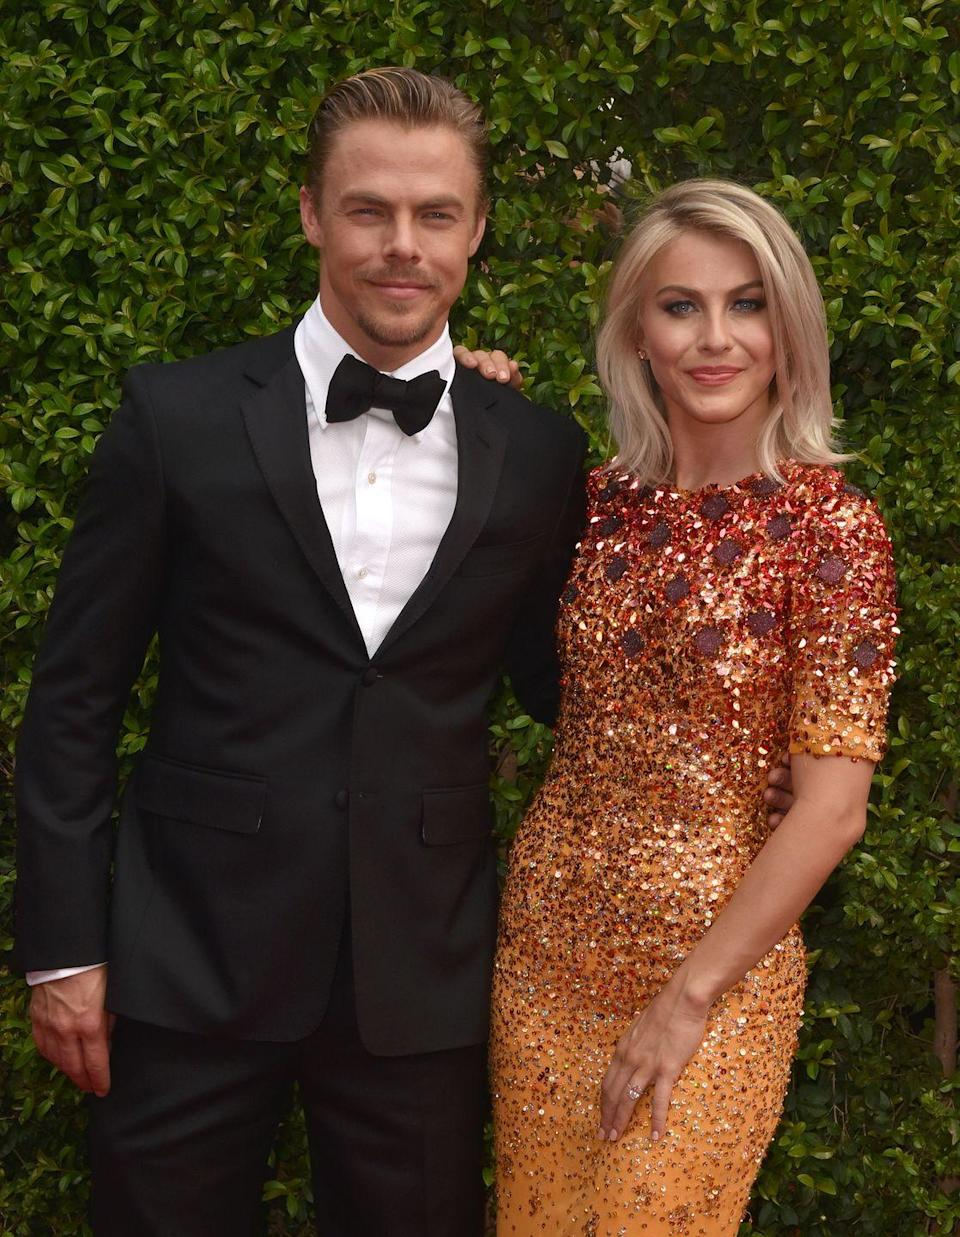 <p>The blonde brother-sister duo both started their Hollywood careers on <em>Dancing With the Stars</em>. In addition to sharing the dancing gene, Derek and Julianne have nearly identical noses, eyes, and heart-shaped faces. </p>